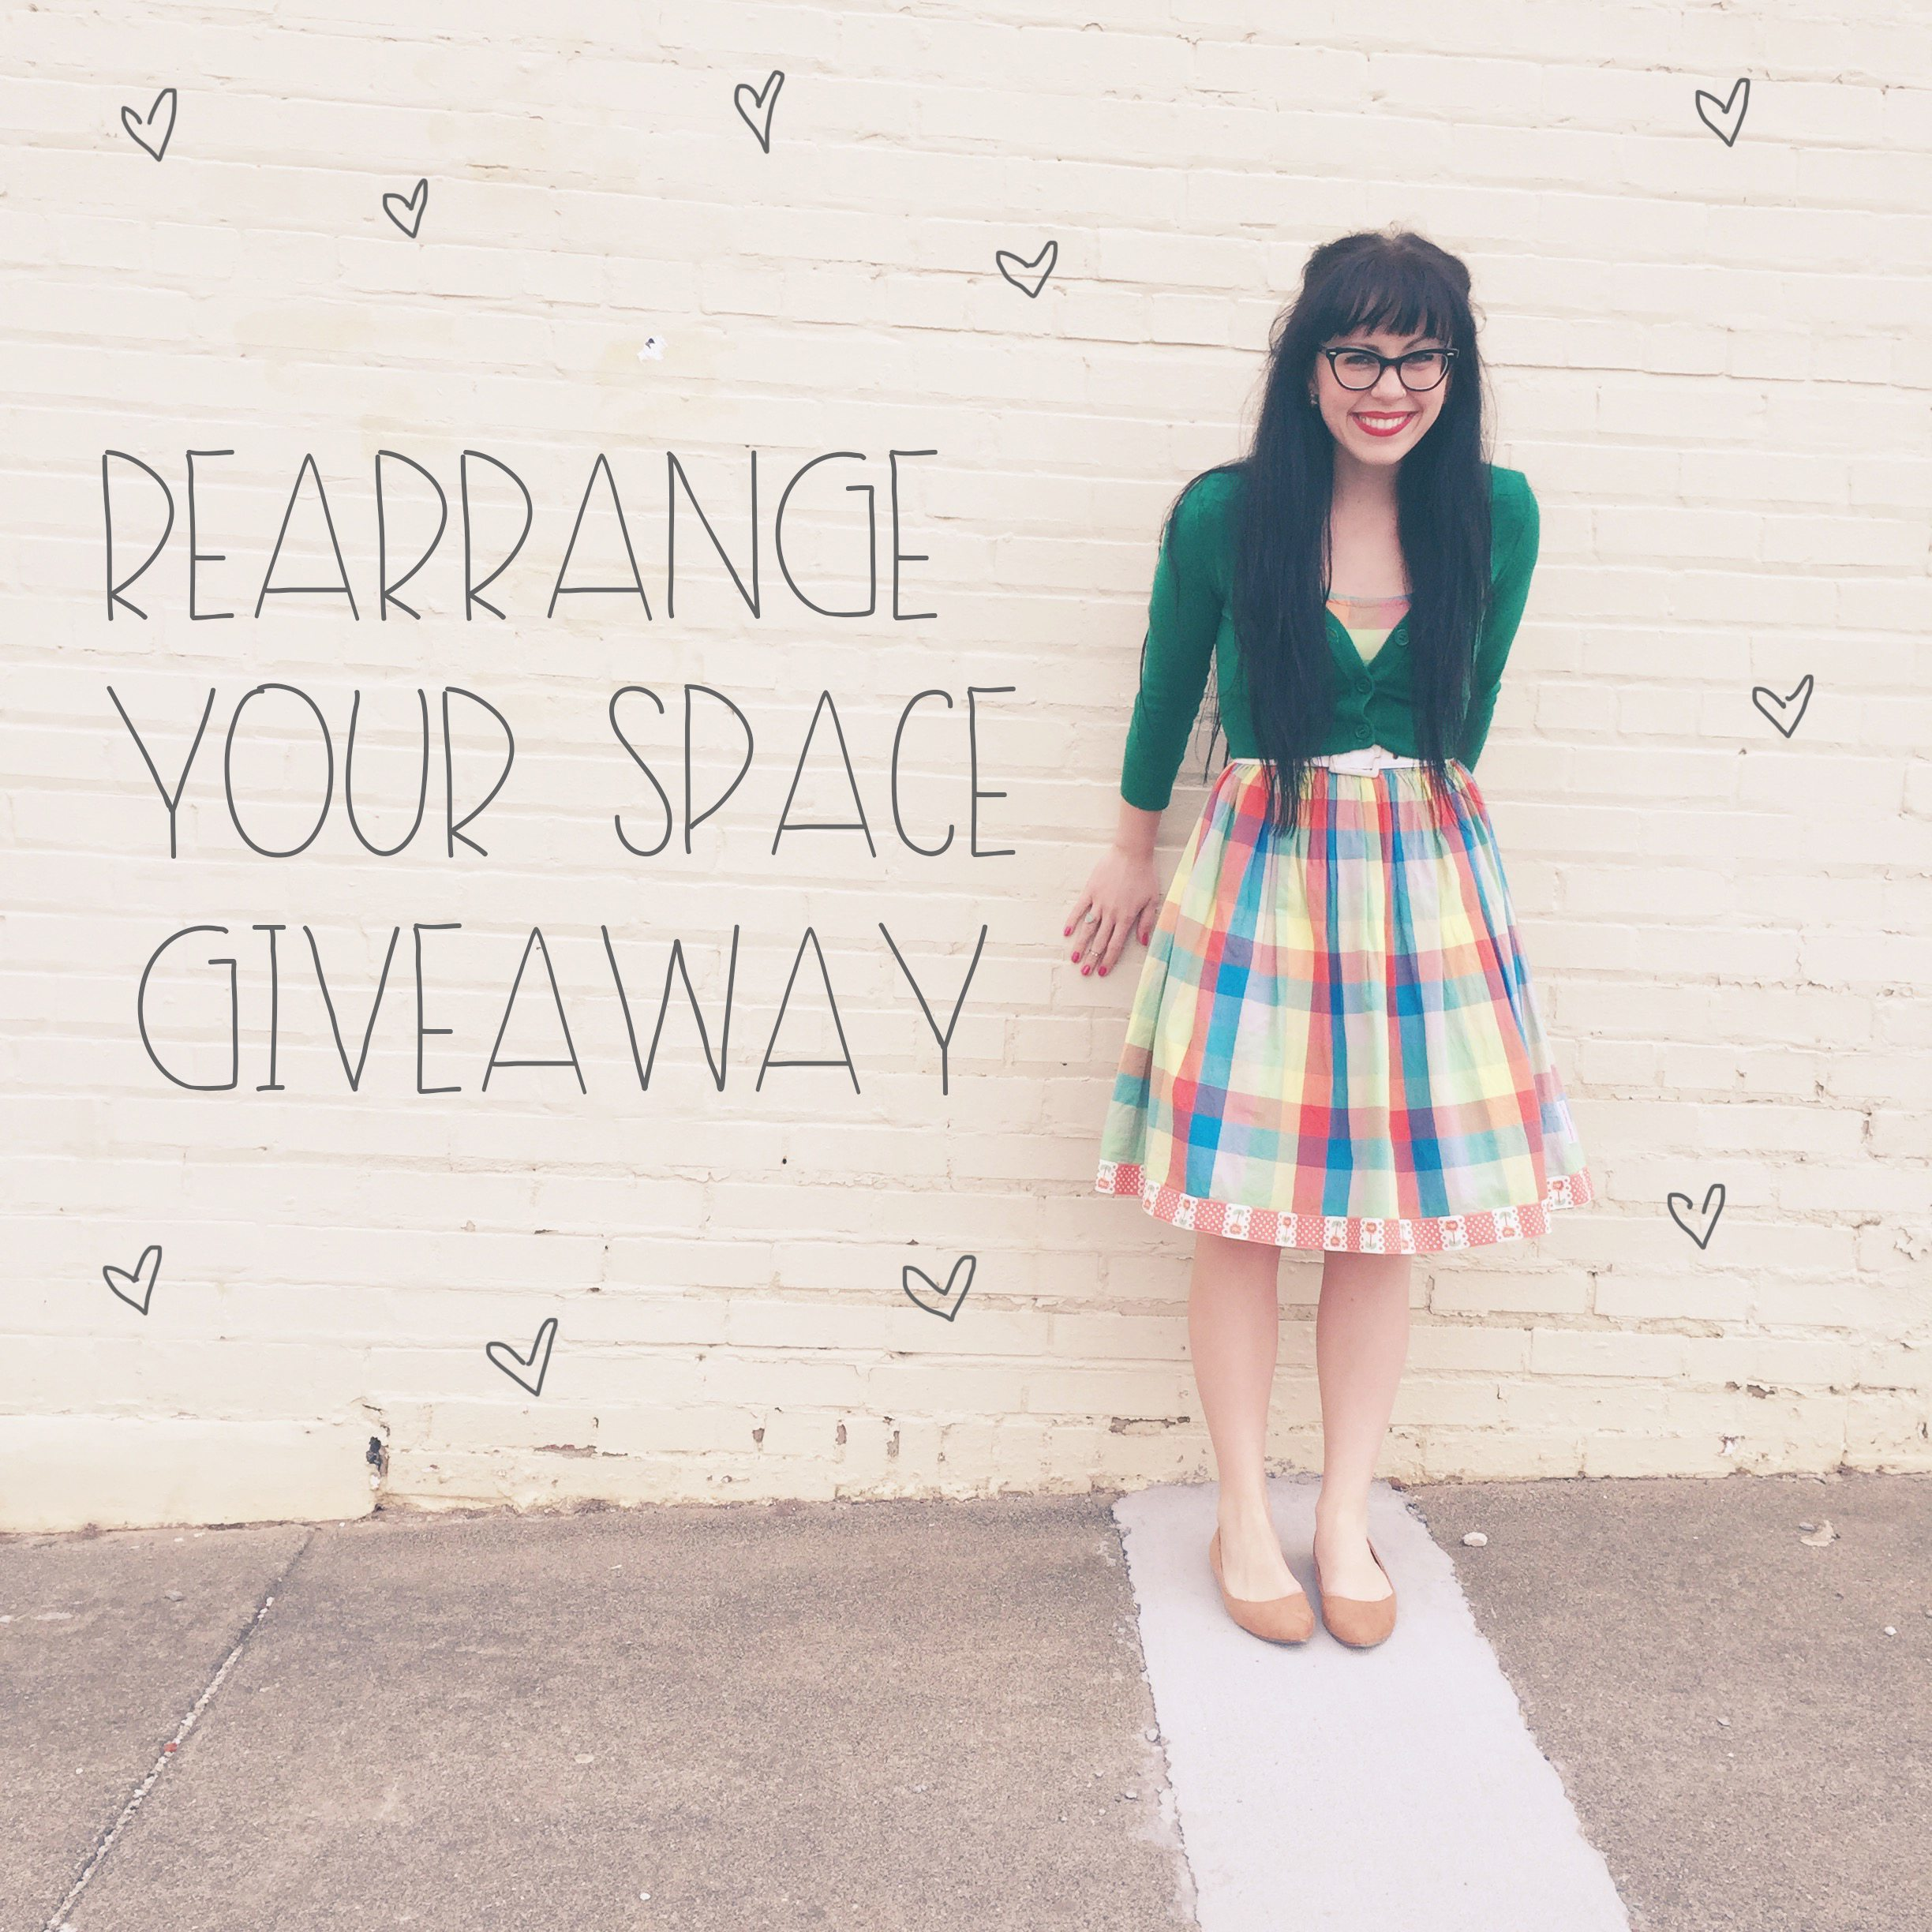 Rearrange your space giveaway | Red Autumn Co